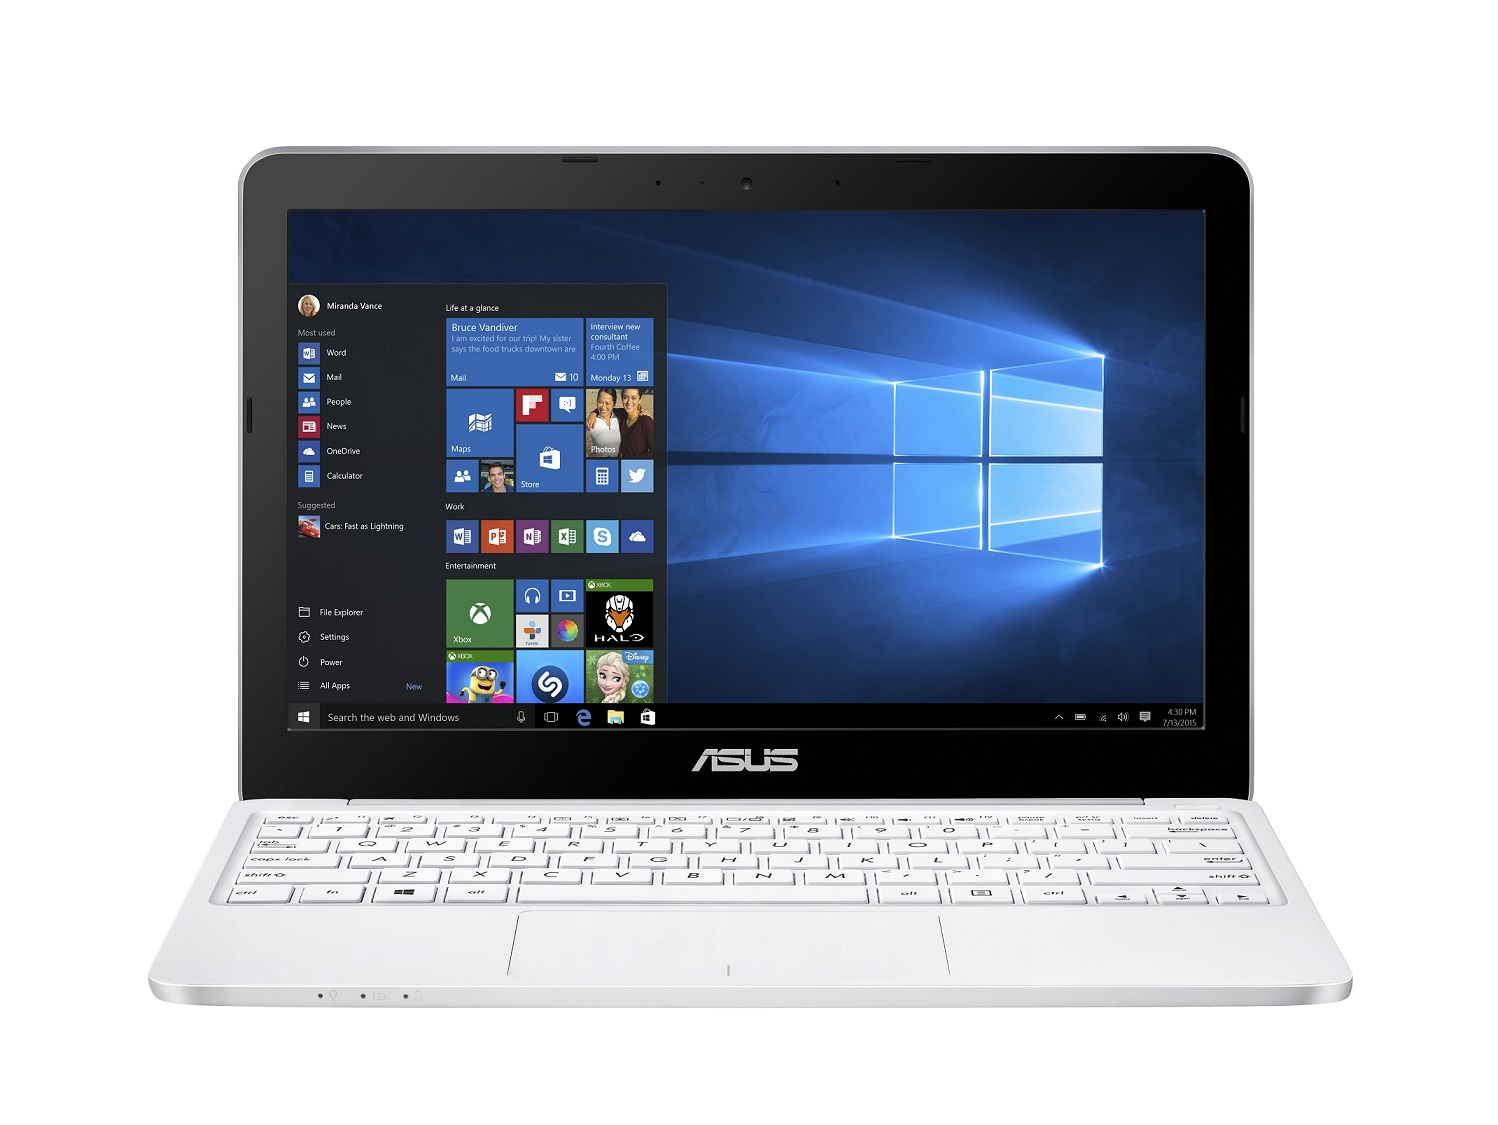 ASUS E200HA 11,6/x5-Z8350/32GB/4G/Win10, bílý